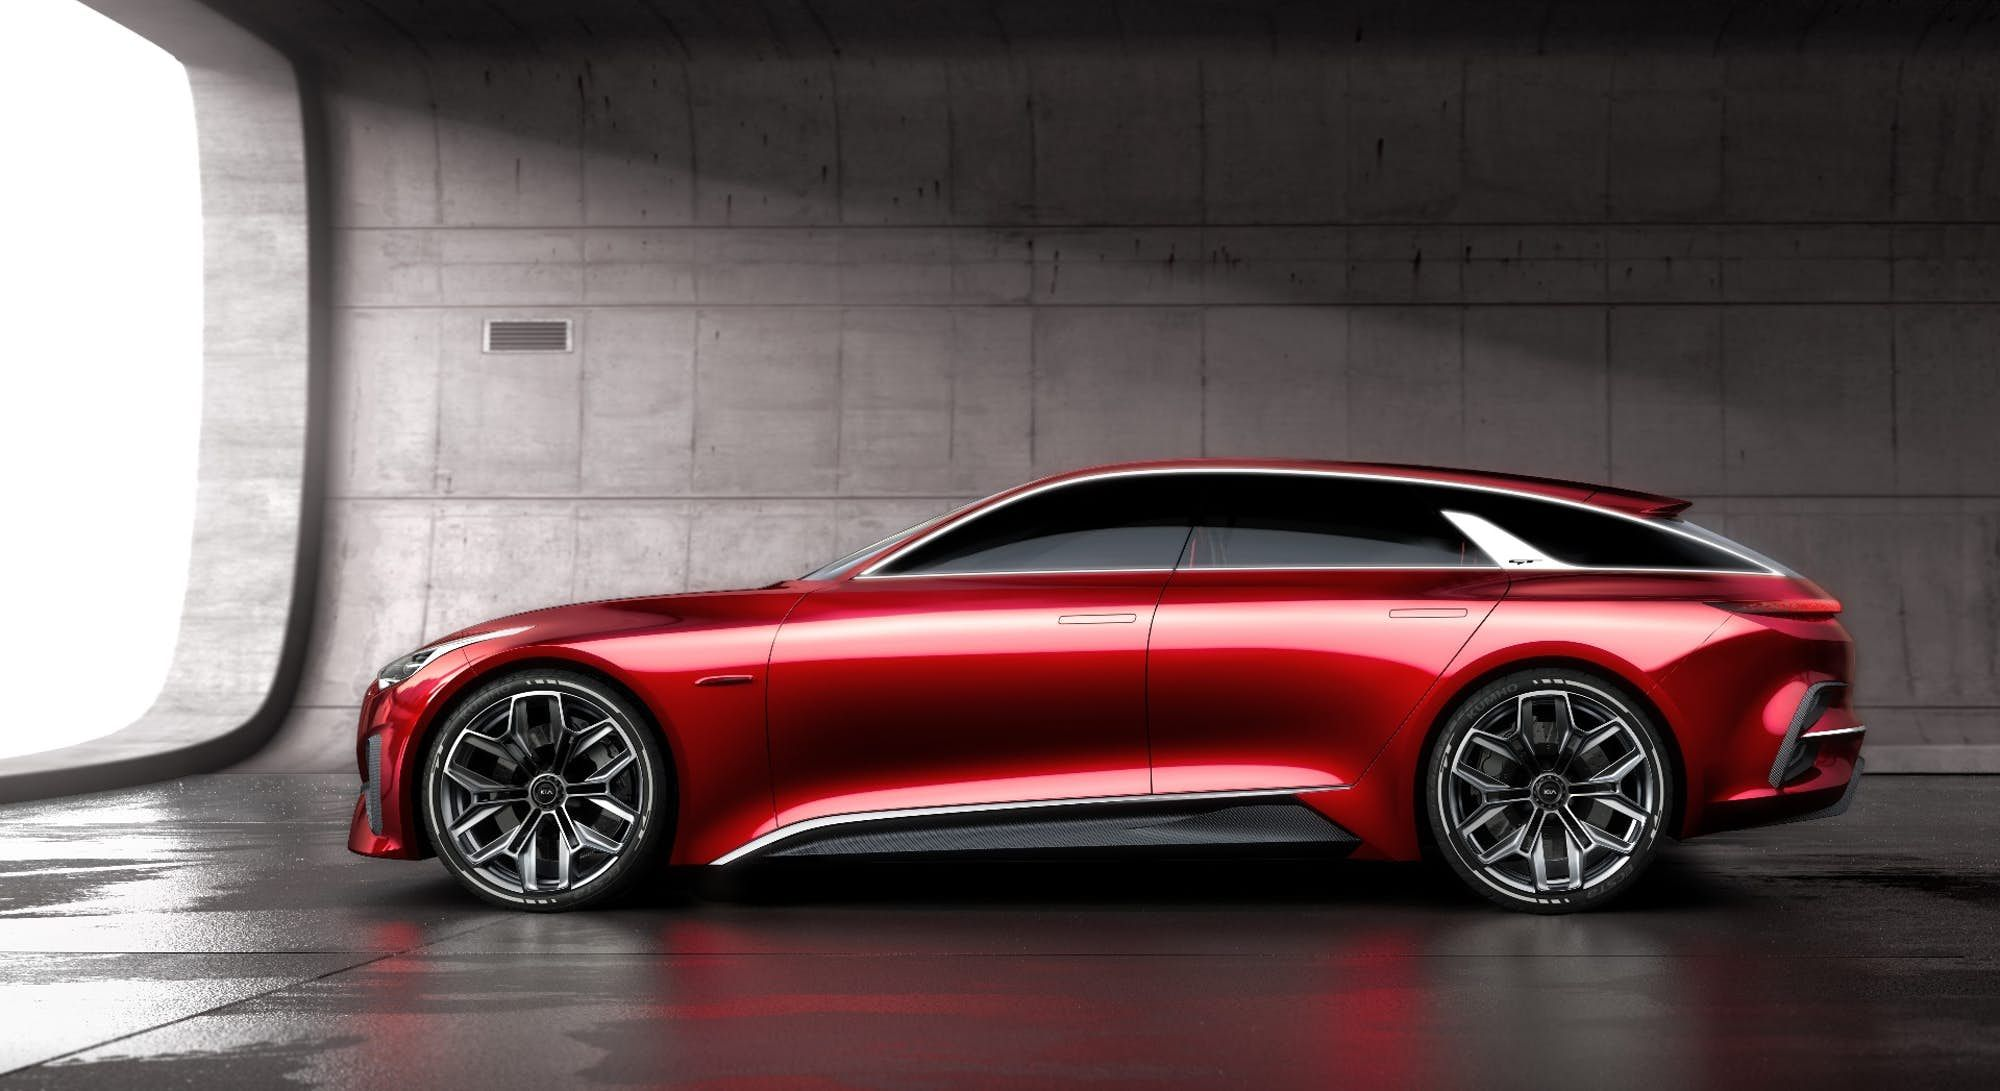 Kia Stretches Out The Hot Hatch With New Concept Car Super Luxury Cars Concept Cars Kia Kia proceed concept frankfurt motor show